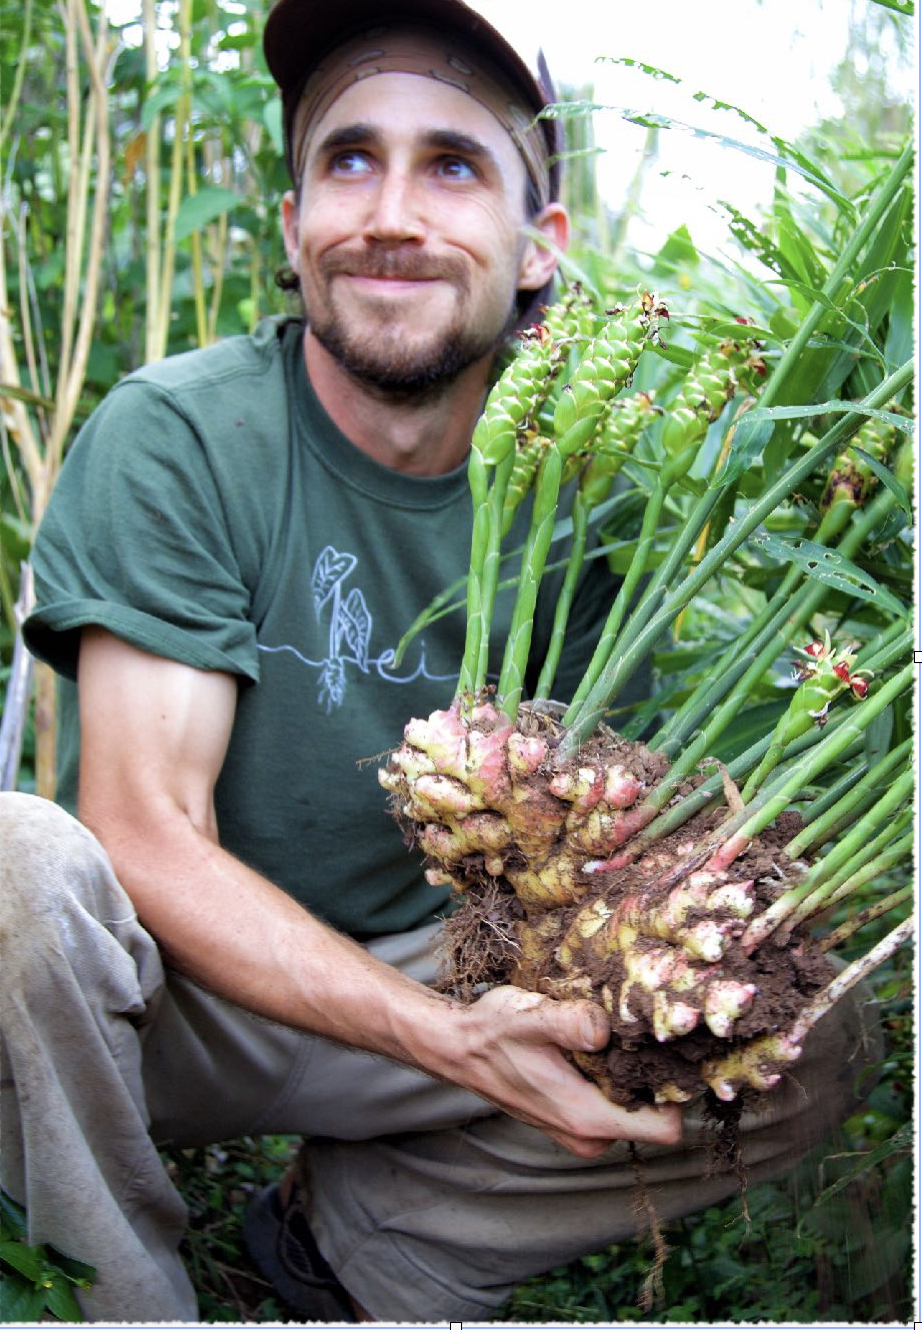 "Travis Dodson, 29- USA - Vision: To co-create a functional farm and living classroom to educate and inspire individuals from around the globe.""I am passionate in cultivating a dynamic multi sensory natural learning environment that returns humanity to the wonder filled state of our foraging ancestors. My vision is to cultivate resiliency, diversity and abundance in a regenerative agroforestry system that restores the land while benefiting humans and the local ecology.With hyper diverse genetic material, we will be preserving plant genetics and installing them in a system with the potential for a legacy life span allowing the plants to naturalize and spread organically like a forest.""For the past 4 years Travis has been living and working with Vanessa to grow our ""living classroom"" and visionary farm/ campus on the Big Island Hawaii."